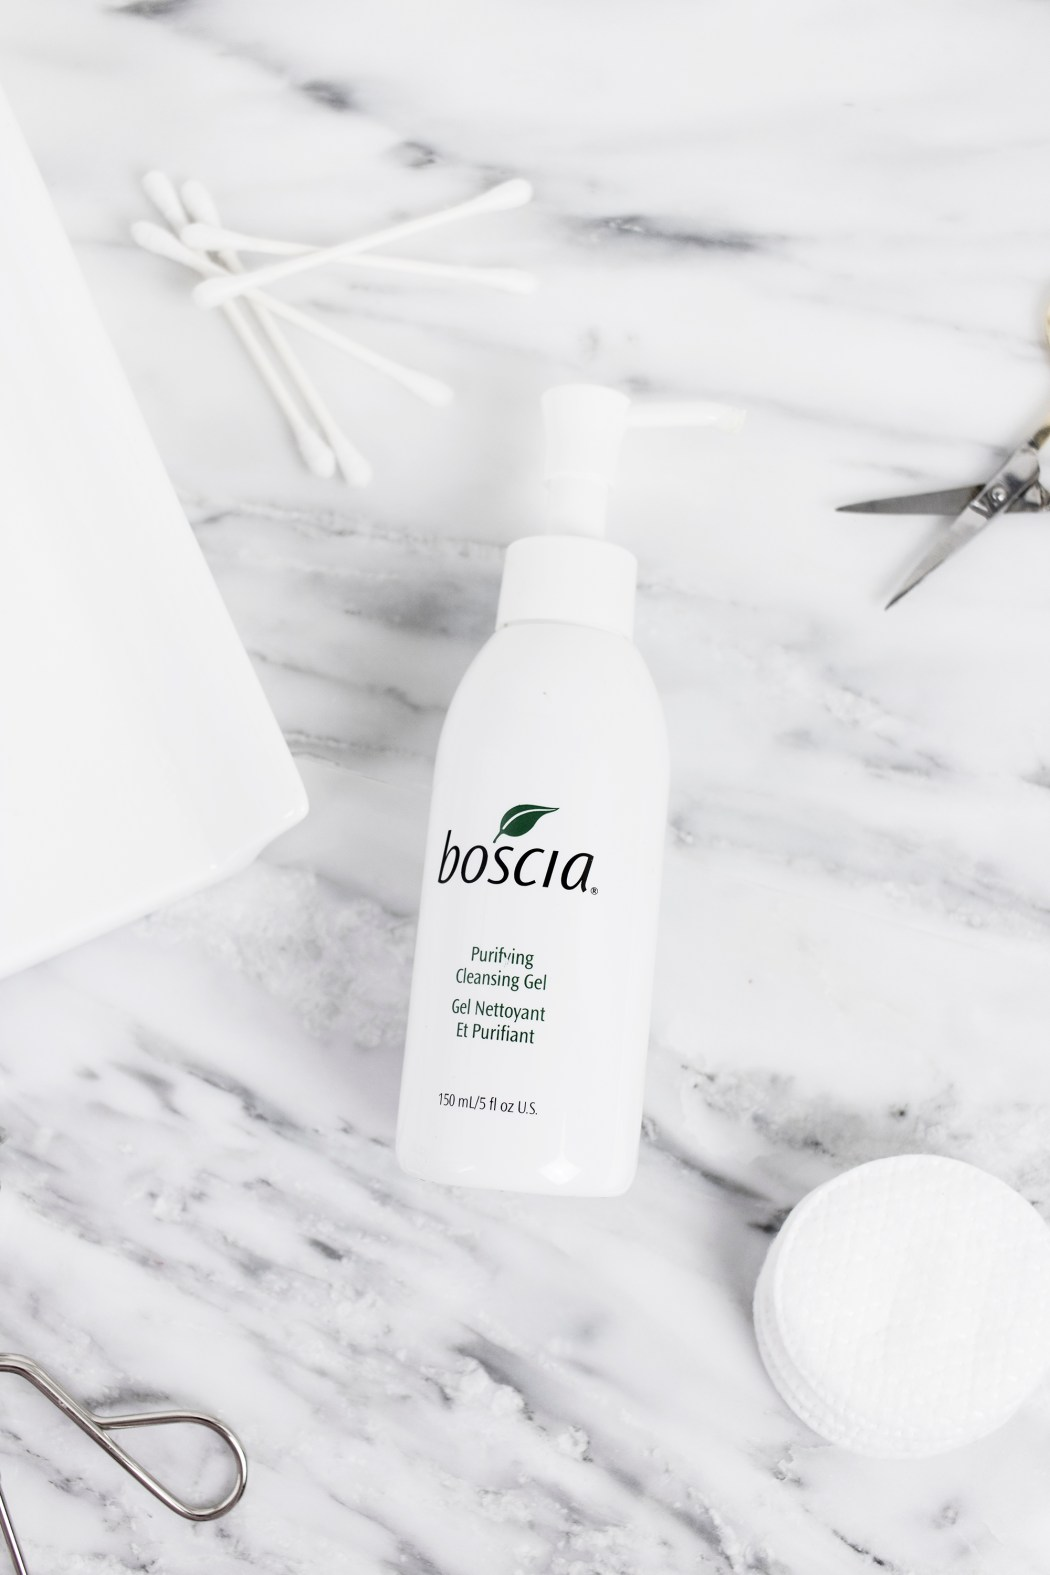 Boscia Purifying Cleansing Gel review